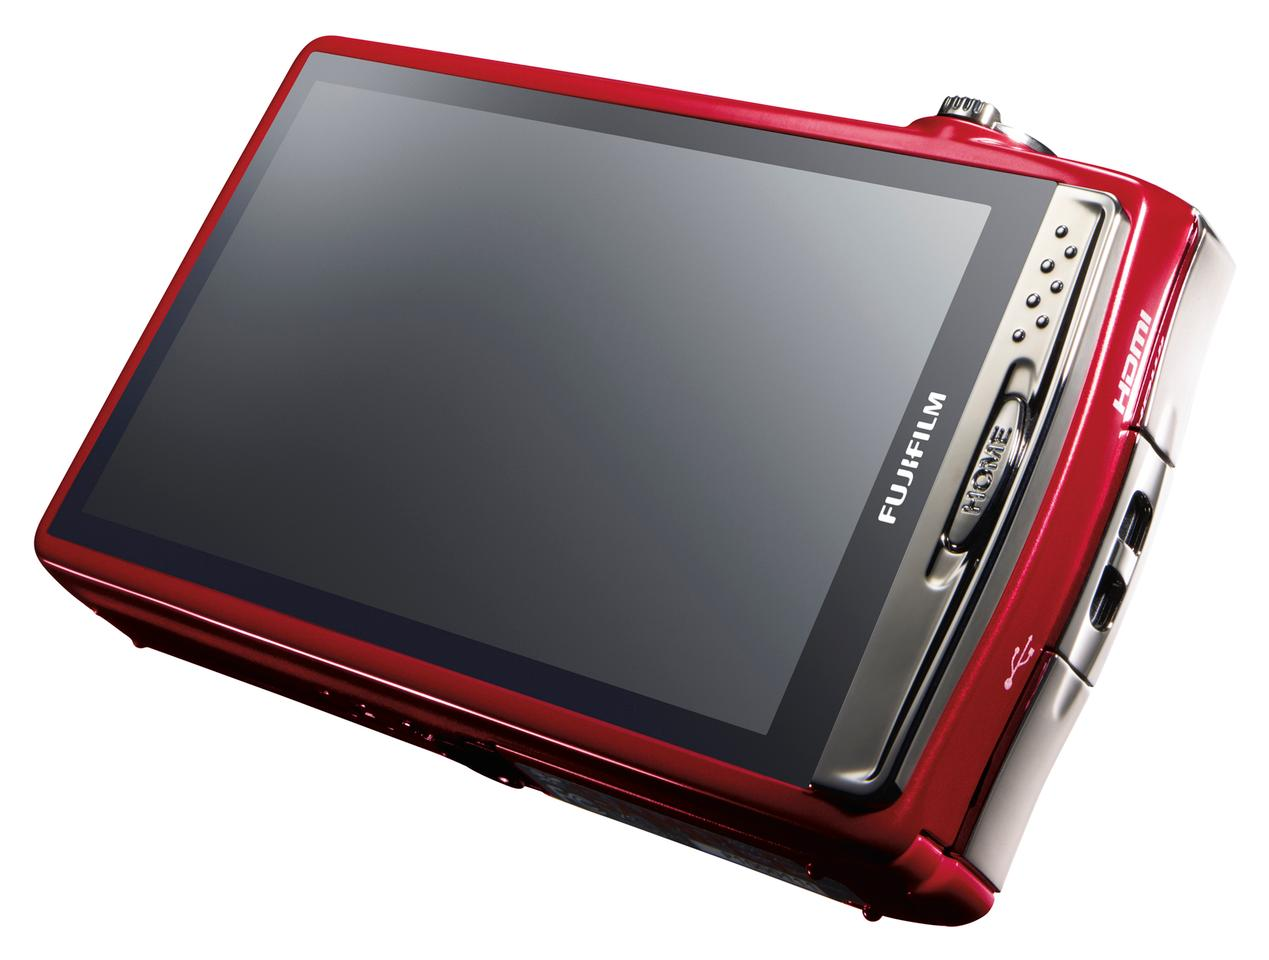 The 3.5-inch, 460,000 dot LCD display has multi-touch technology and improved menus